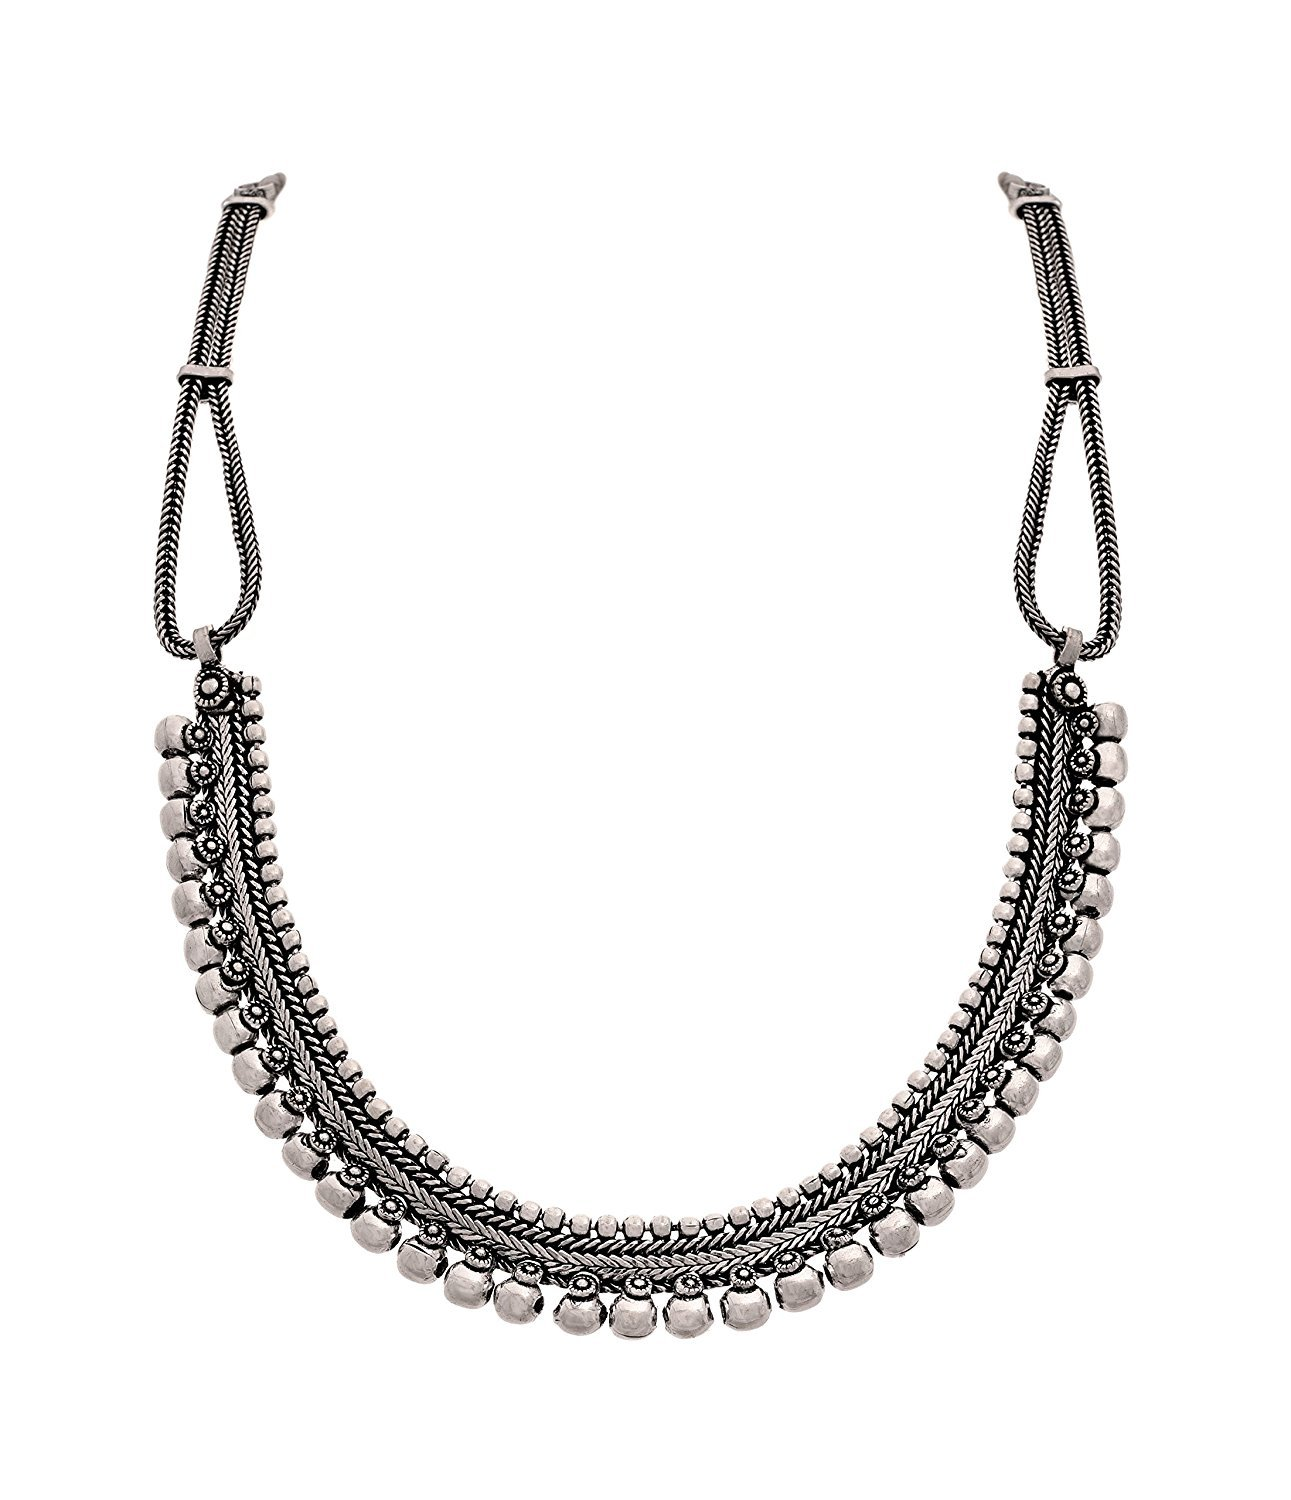 The Trendy Trendz India Bollywood Oxidized Silver Gypsy Style Necklace Jewelry for Women and Girls by The Trendy Trendz (Image #1)